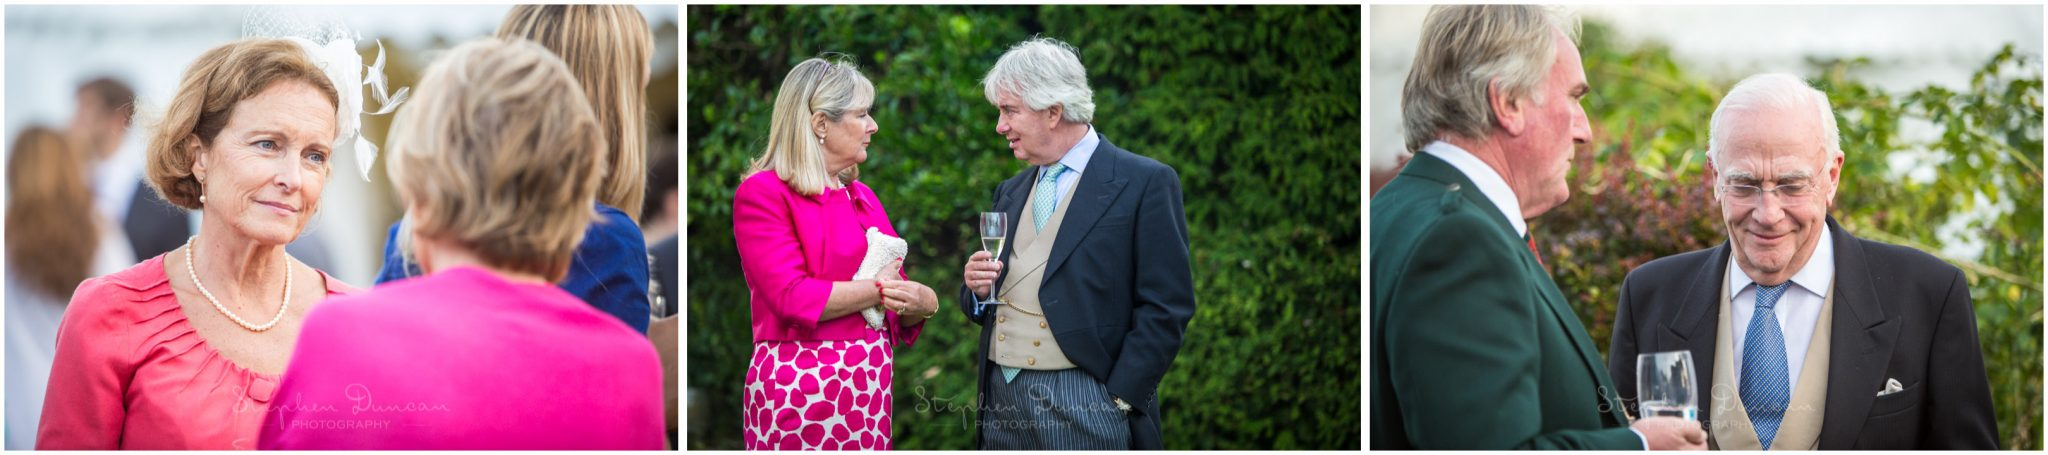 Lymington wedding photography guests in garden